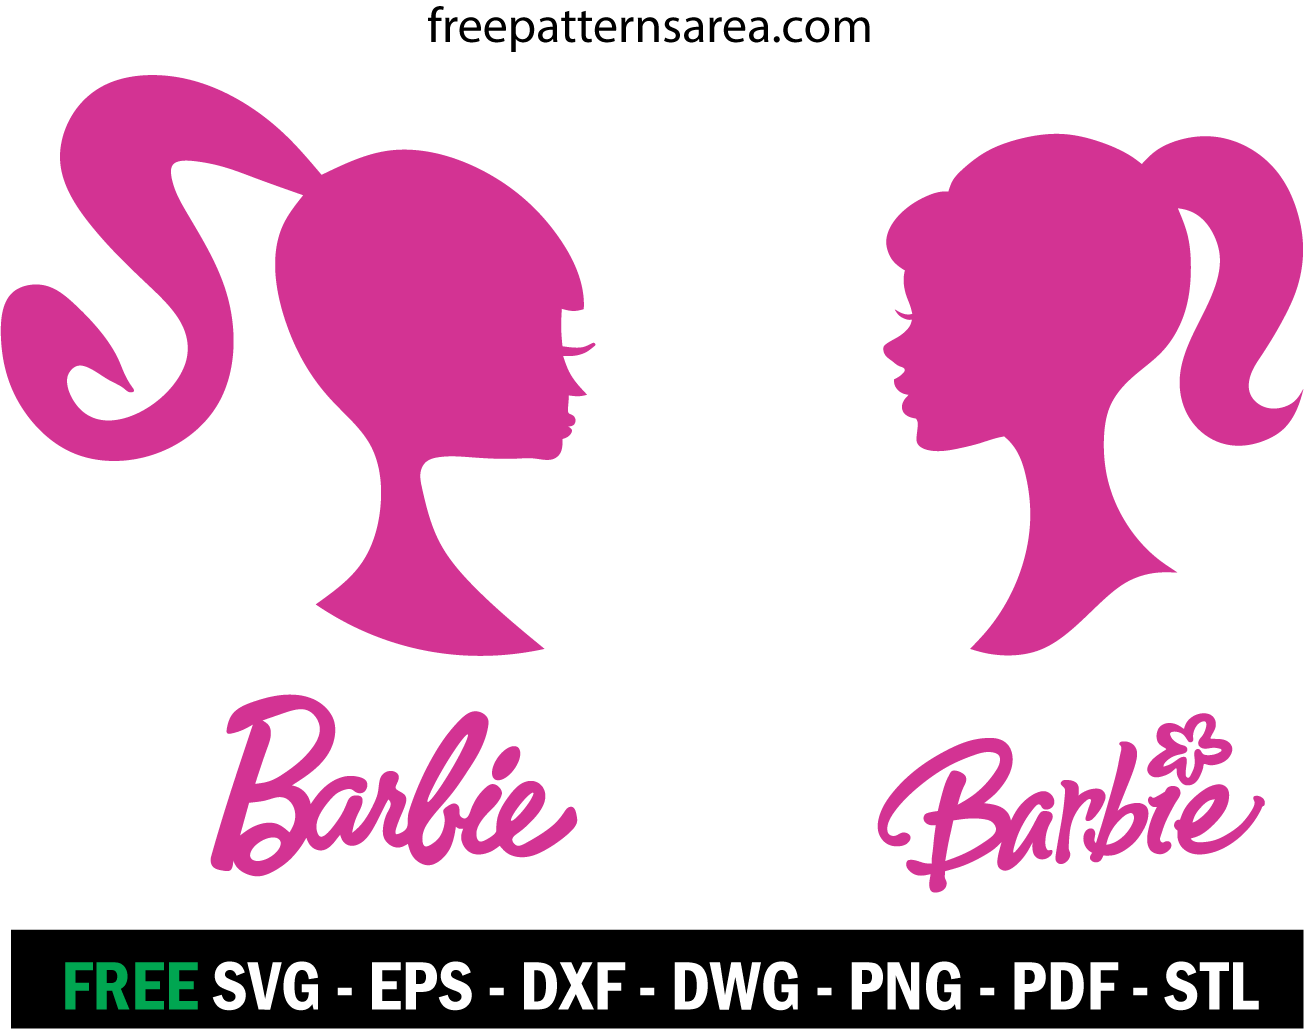 Barbie Silhouette Head Vector Logo Sign Freepatternsarea Barbie Silhouette Silhouette Head Barbie Images